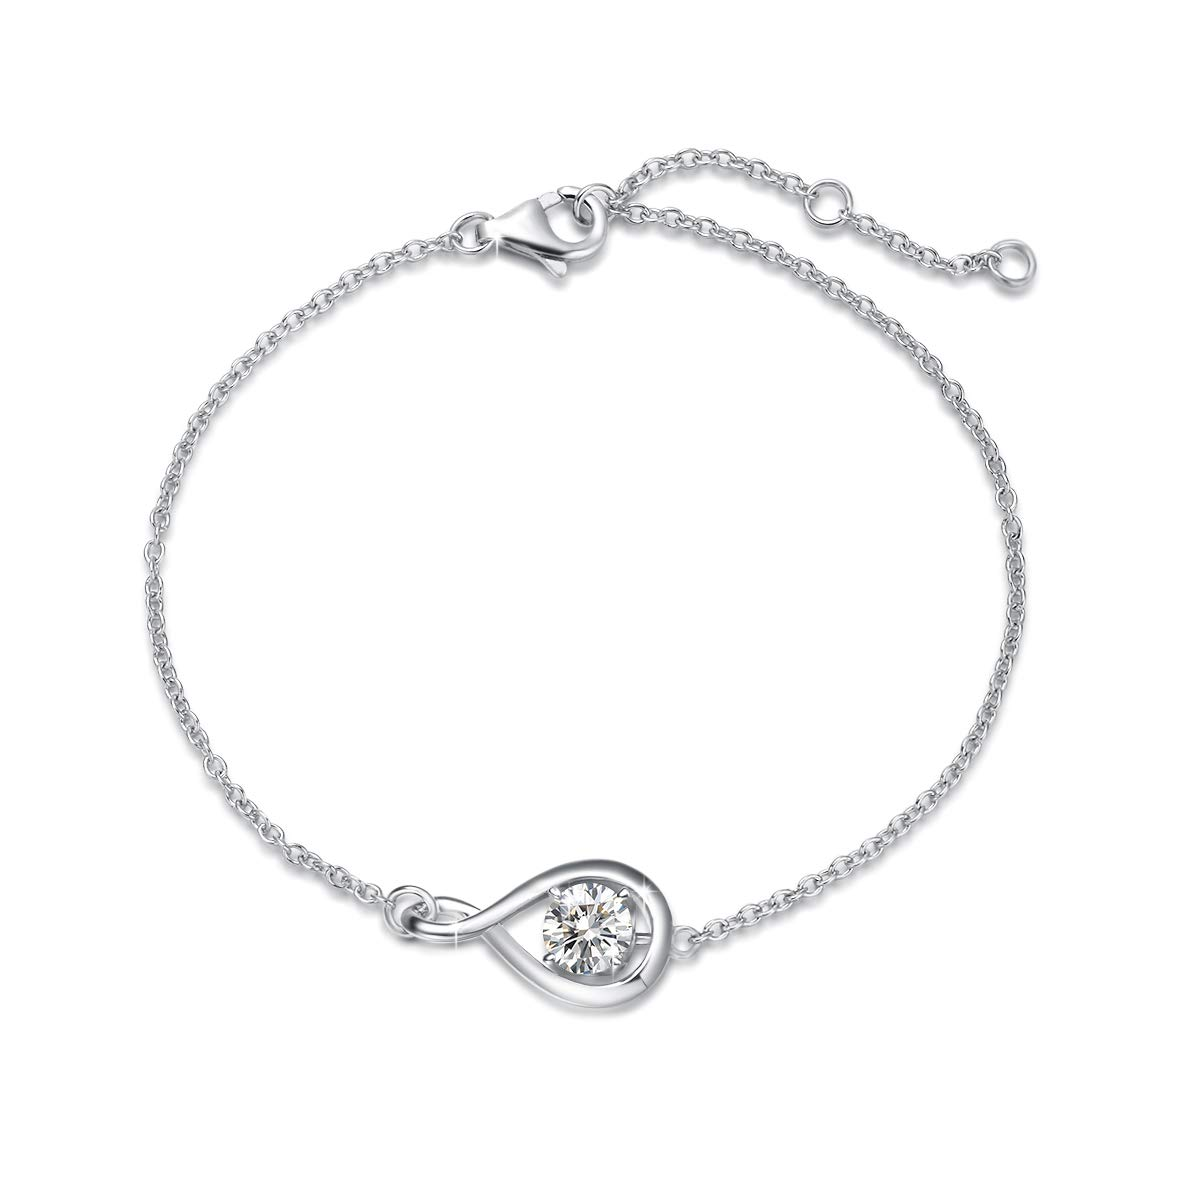 """FANCIME White Gold Plated 925 Sterling Silver Created Amethyst Dainty Infinity Link Bracelet February Birthstone Jewelry Gifts for Women Girls, Chain Length 6.3+1.3""""…"""